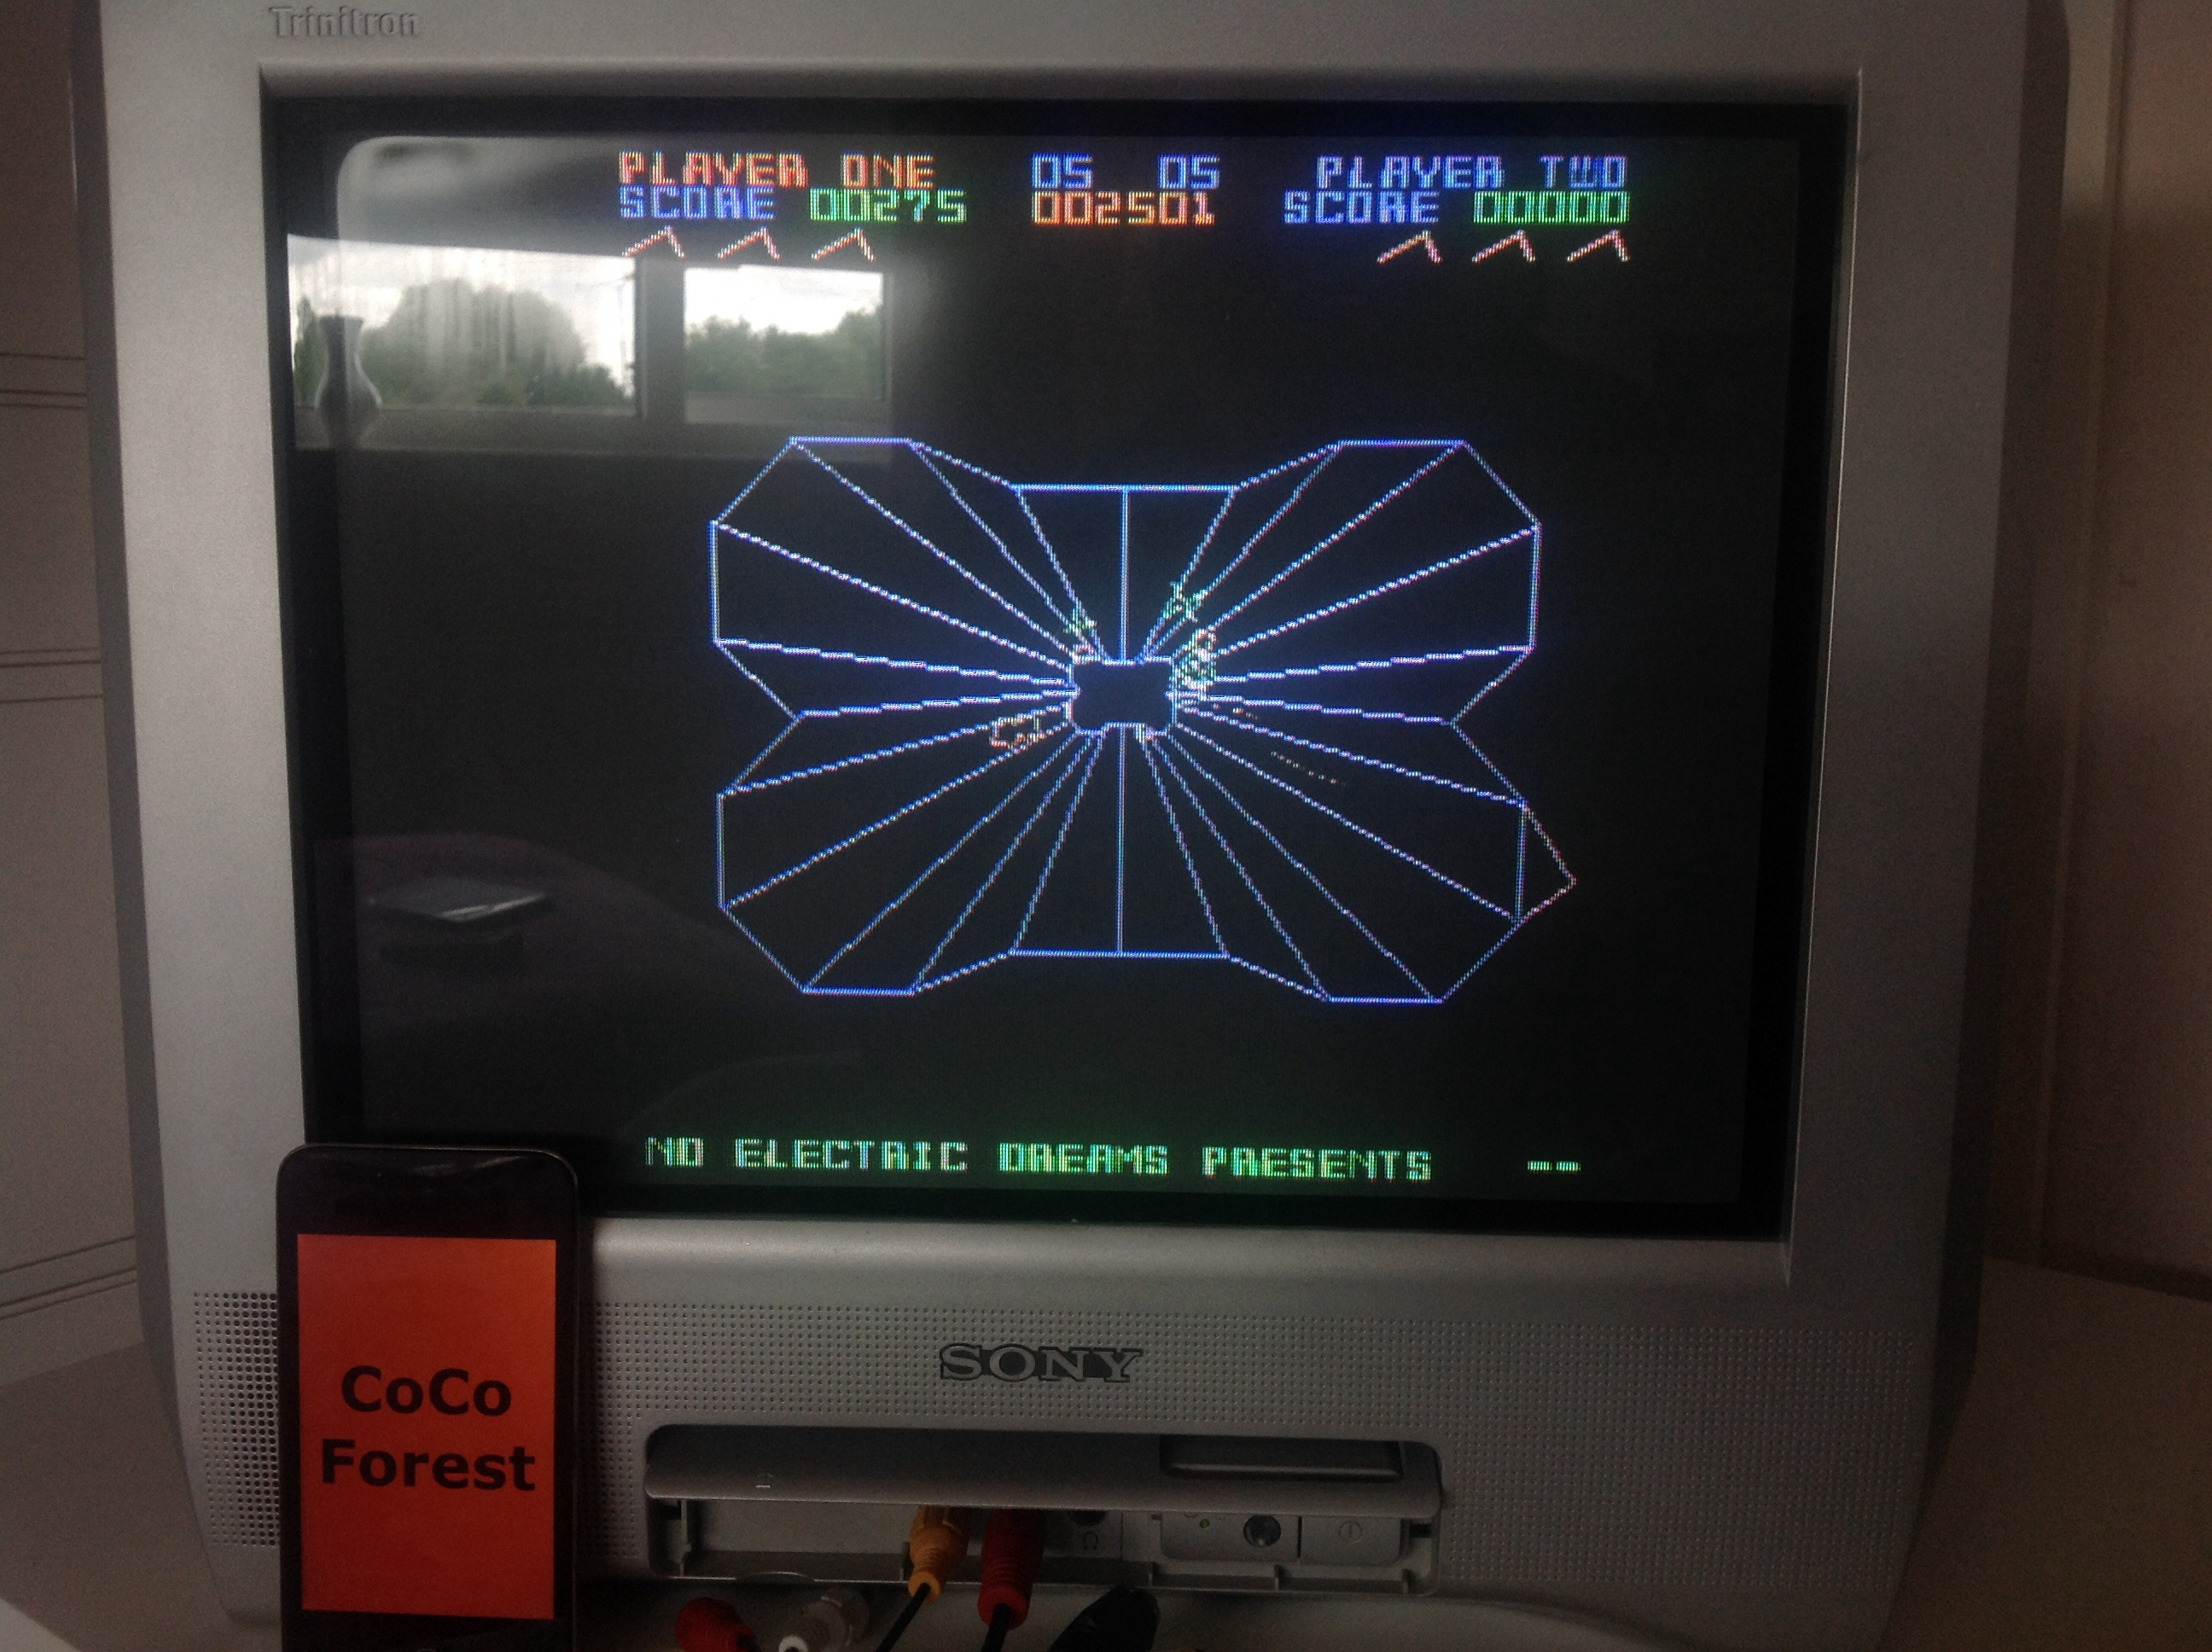 CoCoForest: Tempest (Amstrad CPC) 2,501 points on 2015-06-09 06:30:08